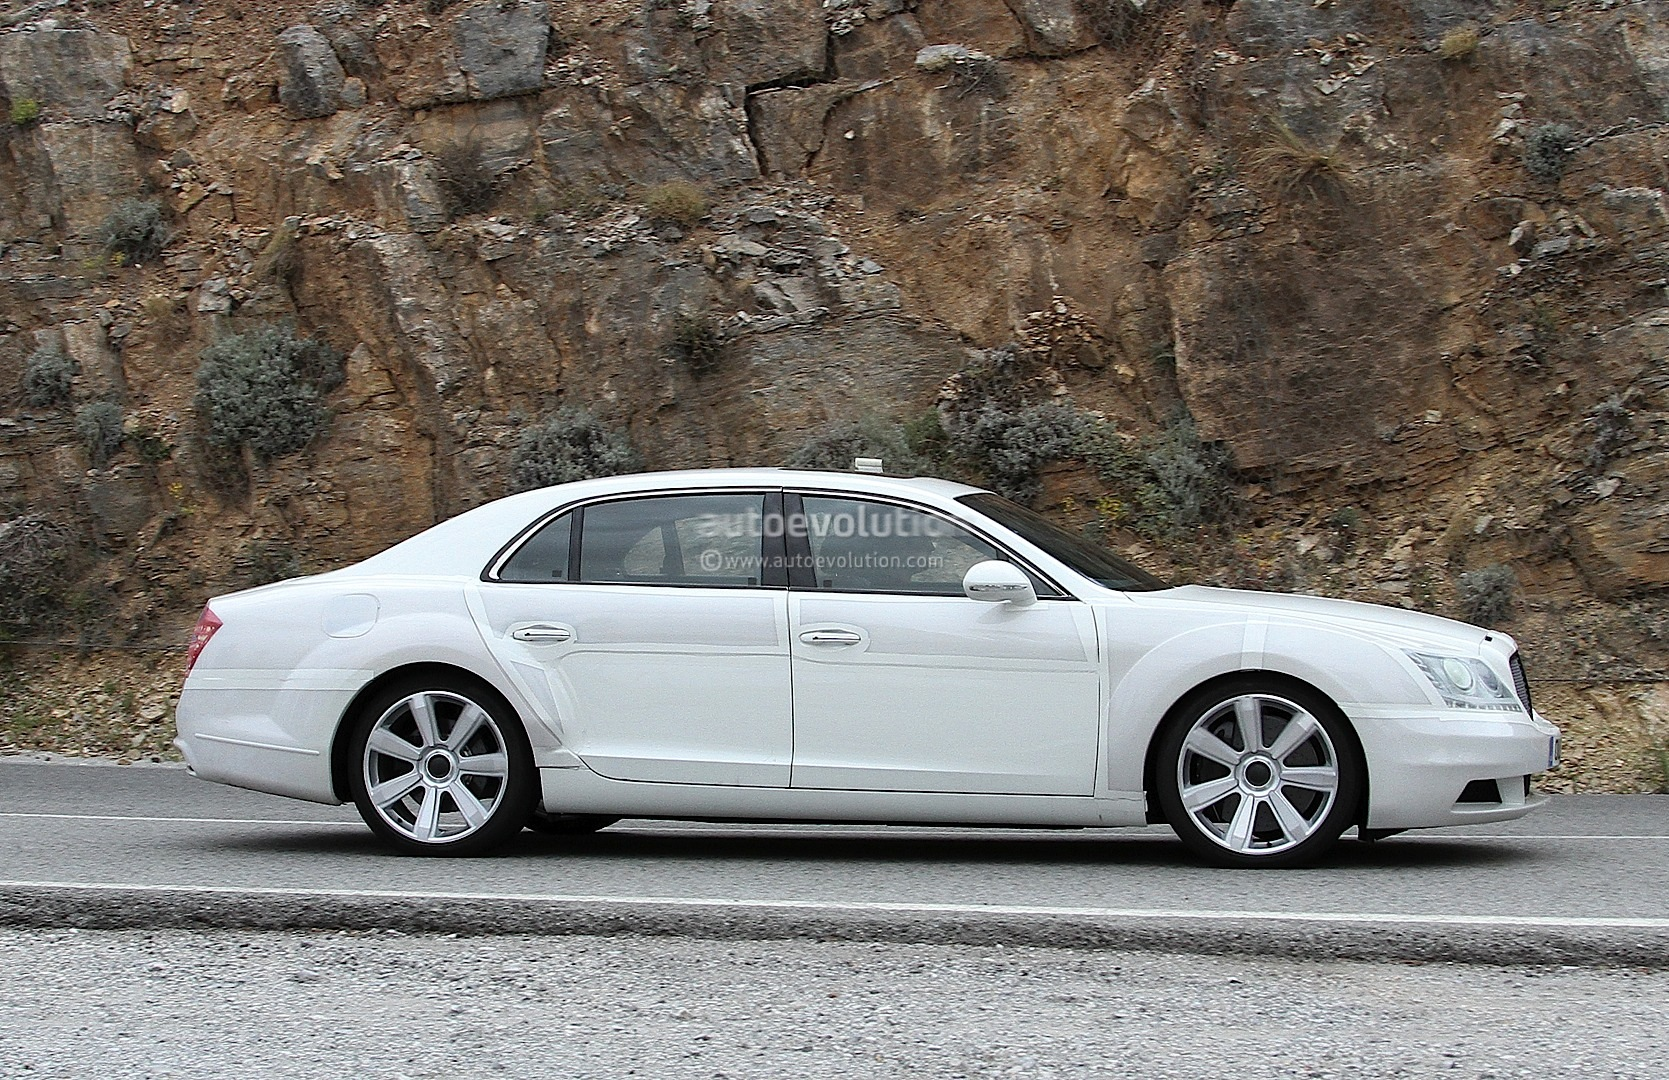 Spyshots: 2014 Bentley Continental Flying Spur Facelift Disguised as S